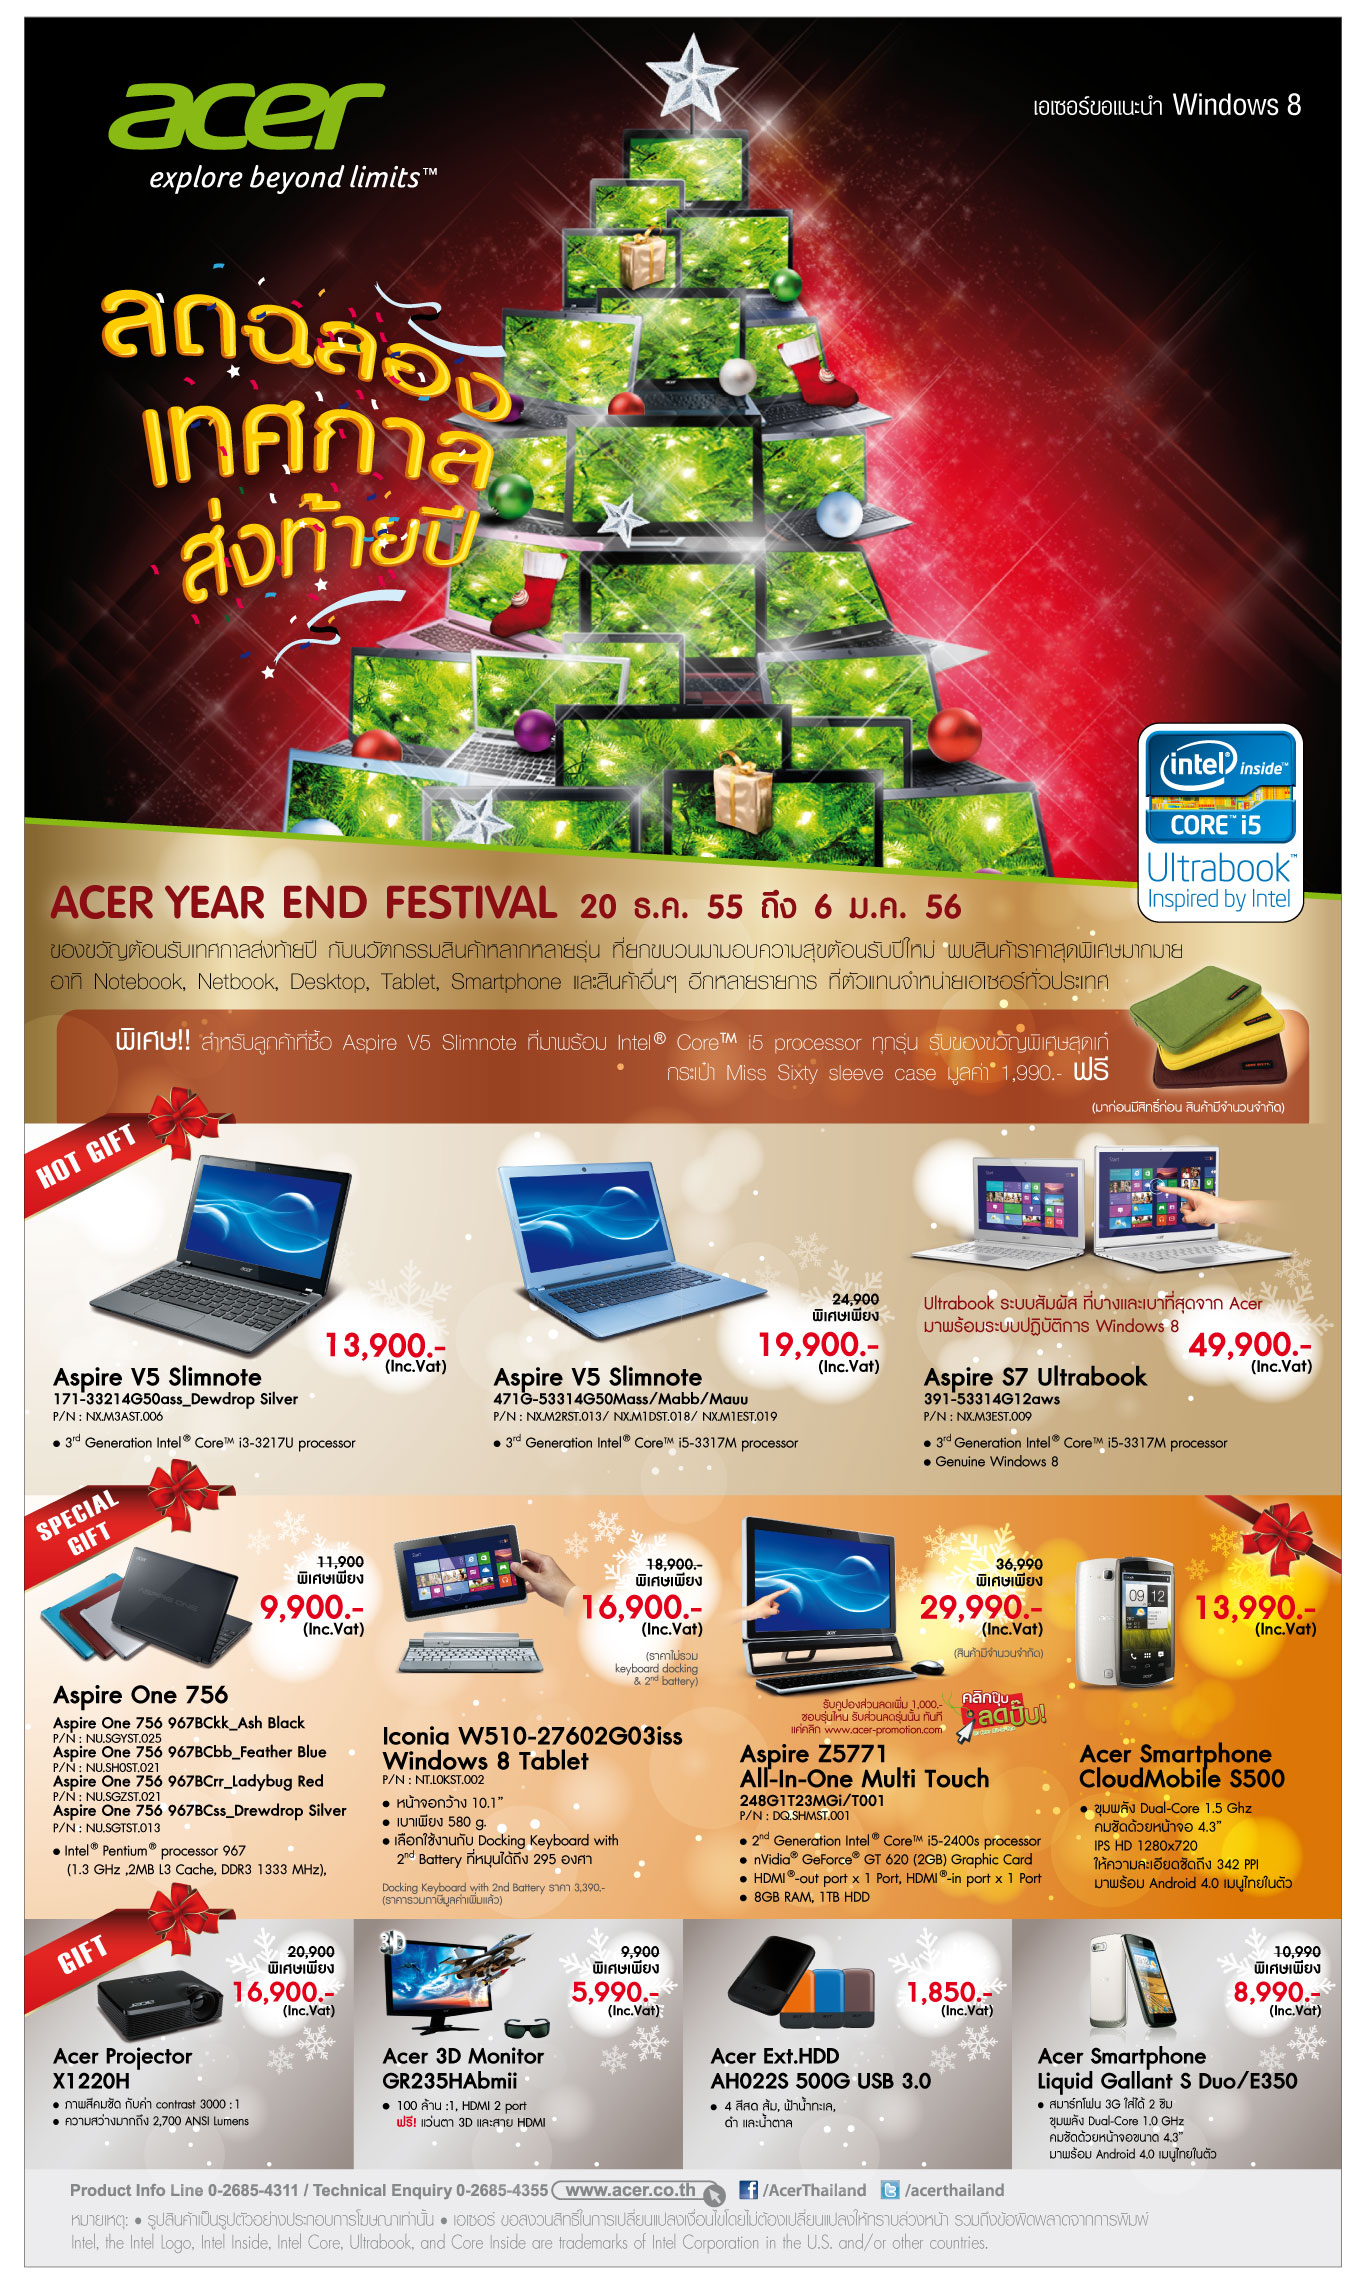 ACER Year End 2012 Final